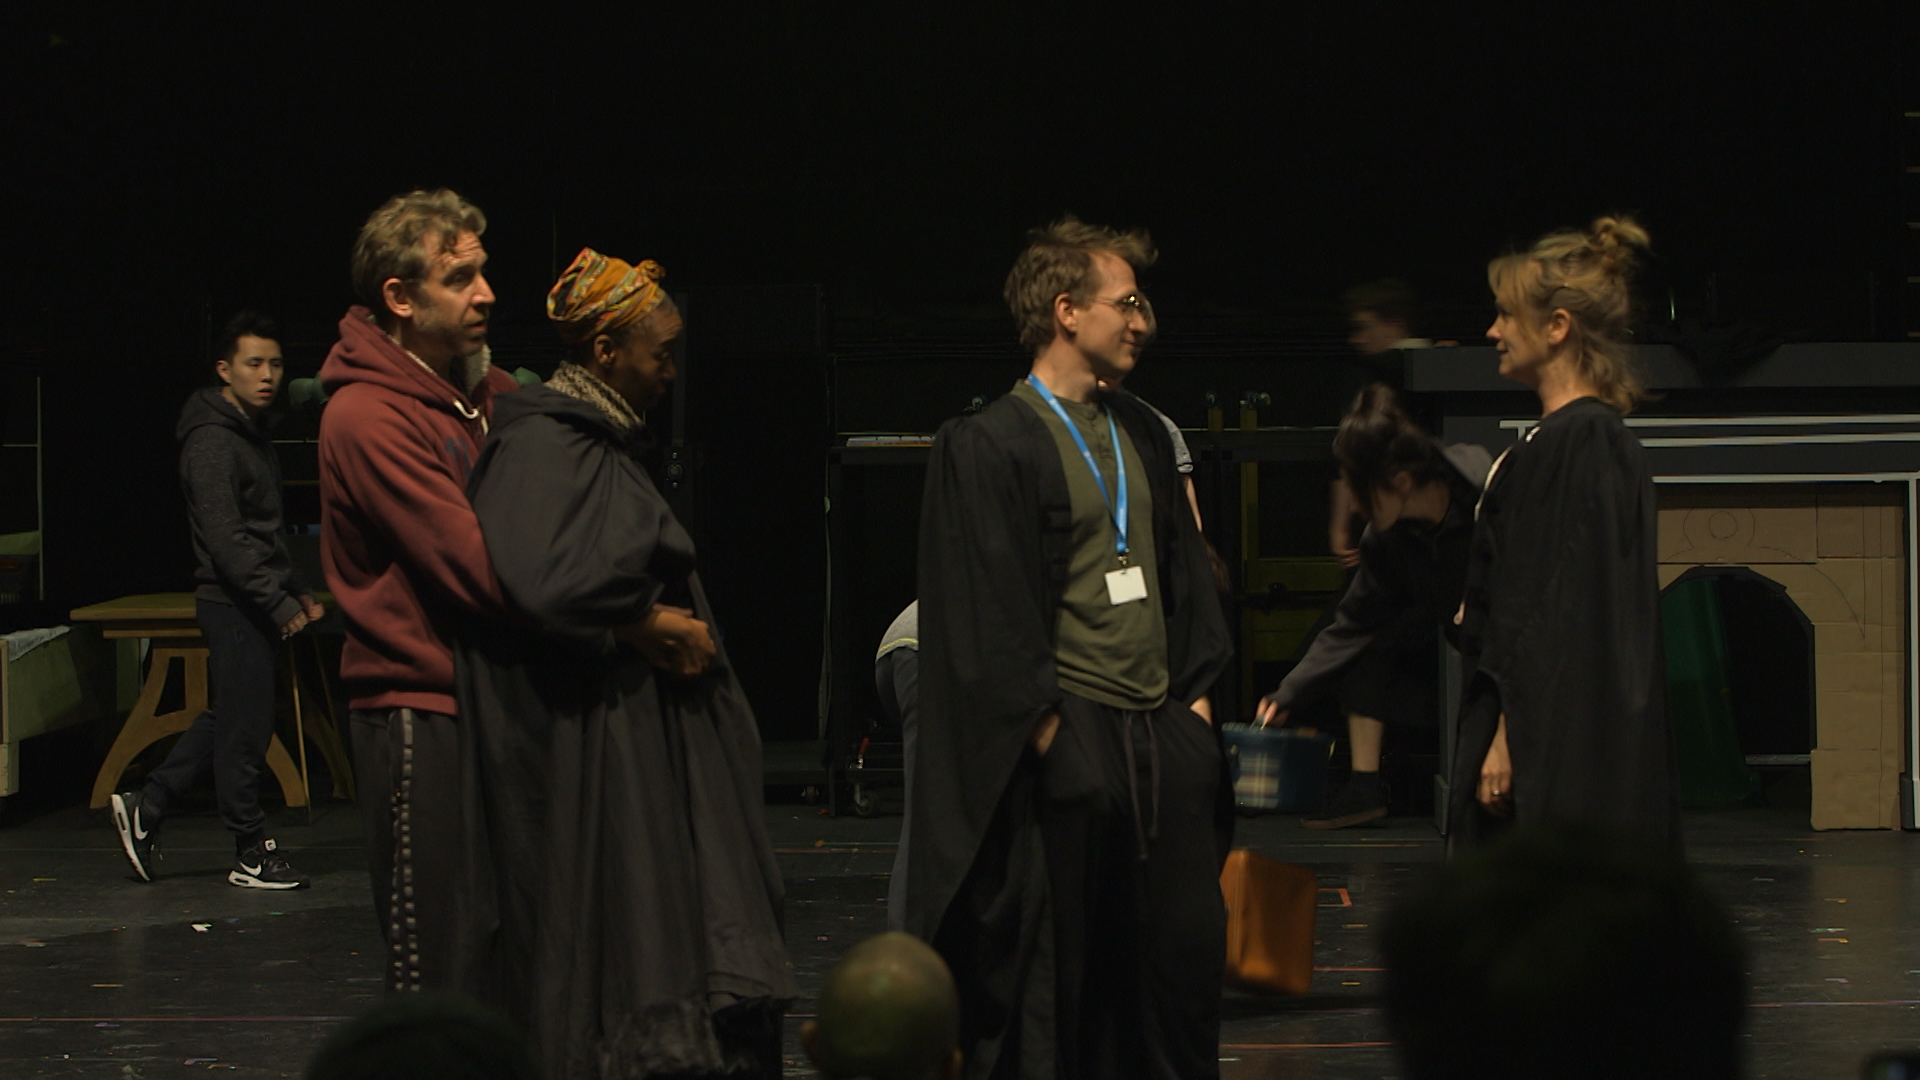 Actors Paul Thornley, Noma Dumezweni, Jamie Parker and Poppy Miller